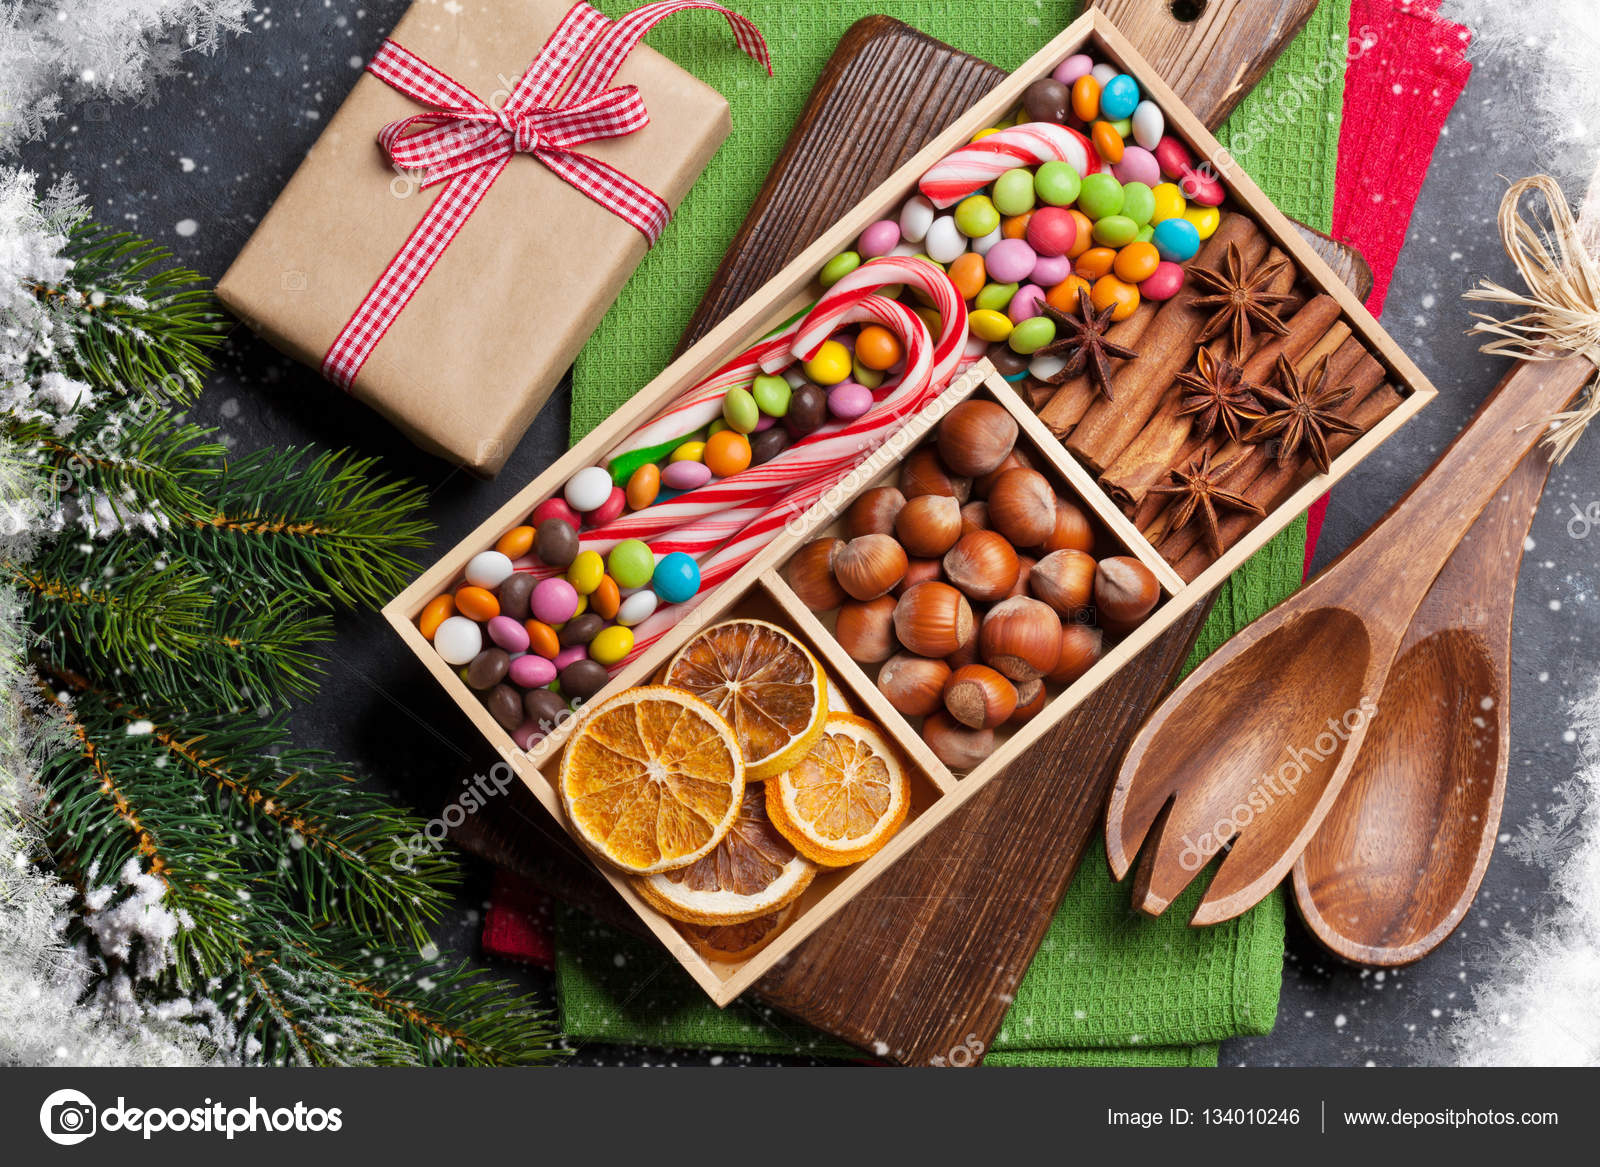 food decor in gift box — Stock Photo © karandaev #134010246